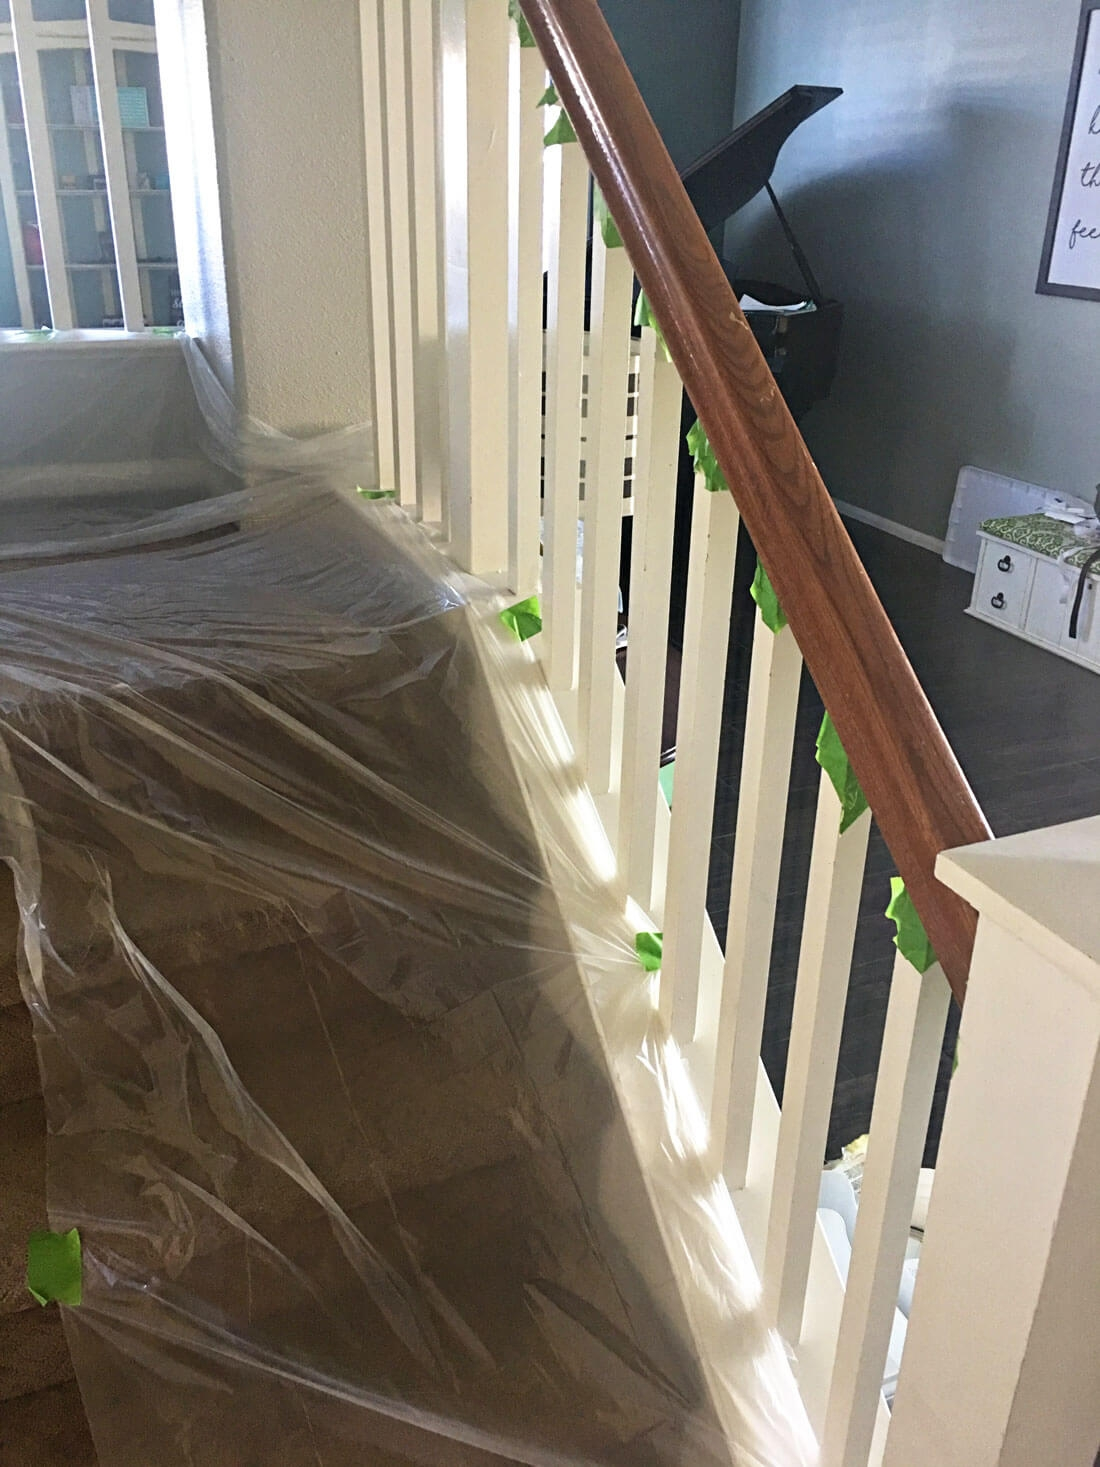 How To Paint Your Stair Railing And Banister Black From 30Daysblog   Black Banister With White Spindles   Round   Antique   Finished Painted Stair   Oak Handrail Basket   Brazilian Cherry Stair